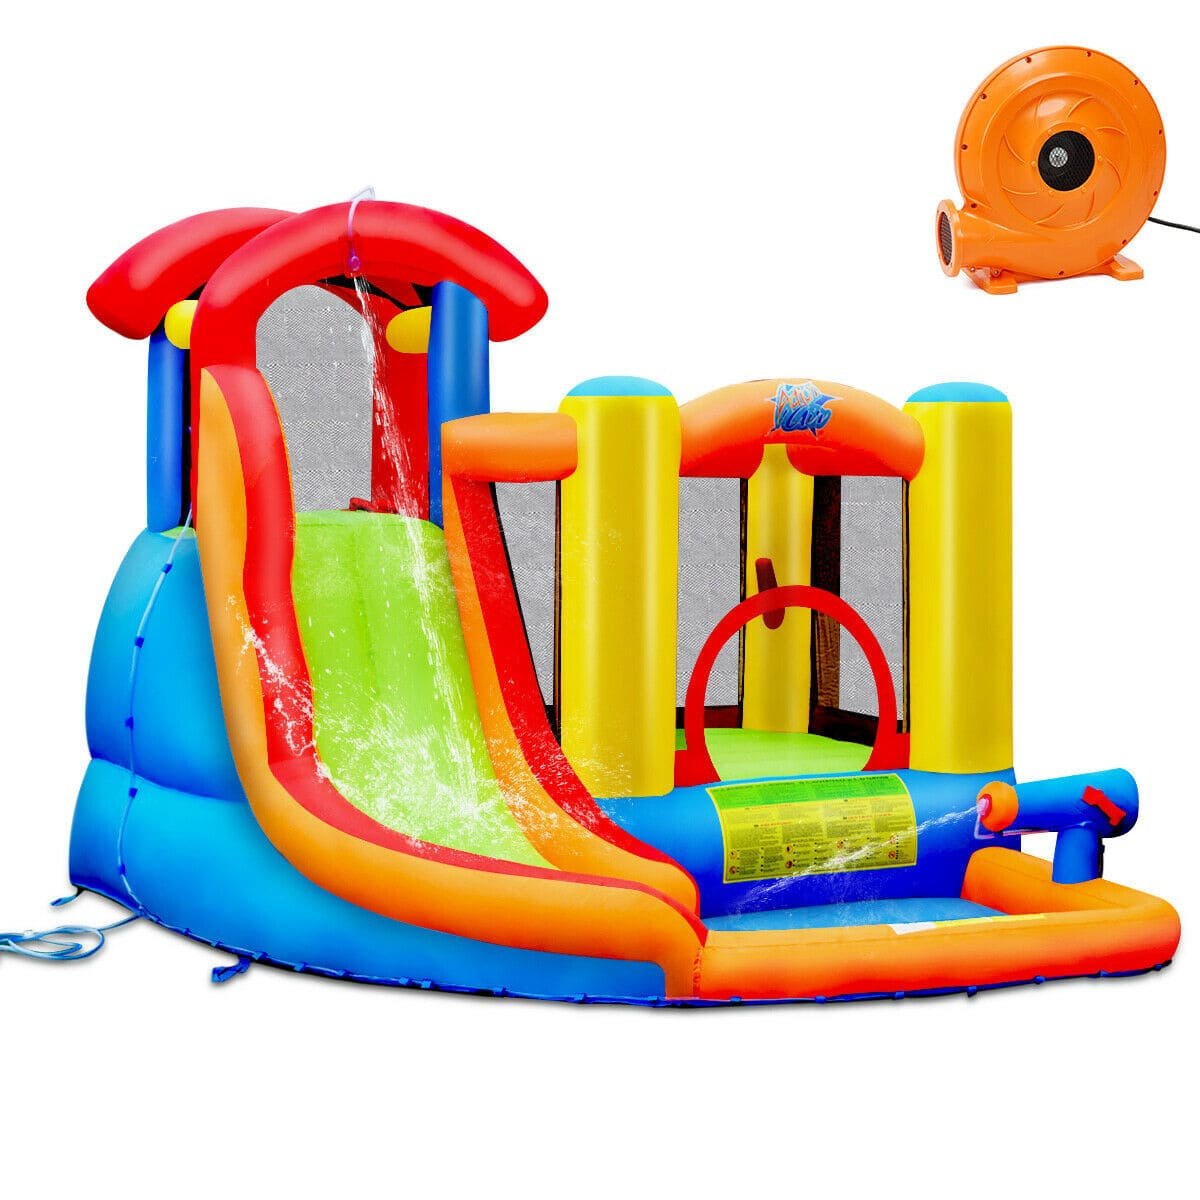 Inflatable Castle Water Slide  Bounce House with 740W Blower - FREE SHIPPING